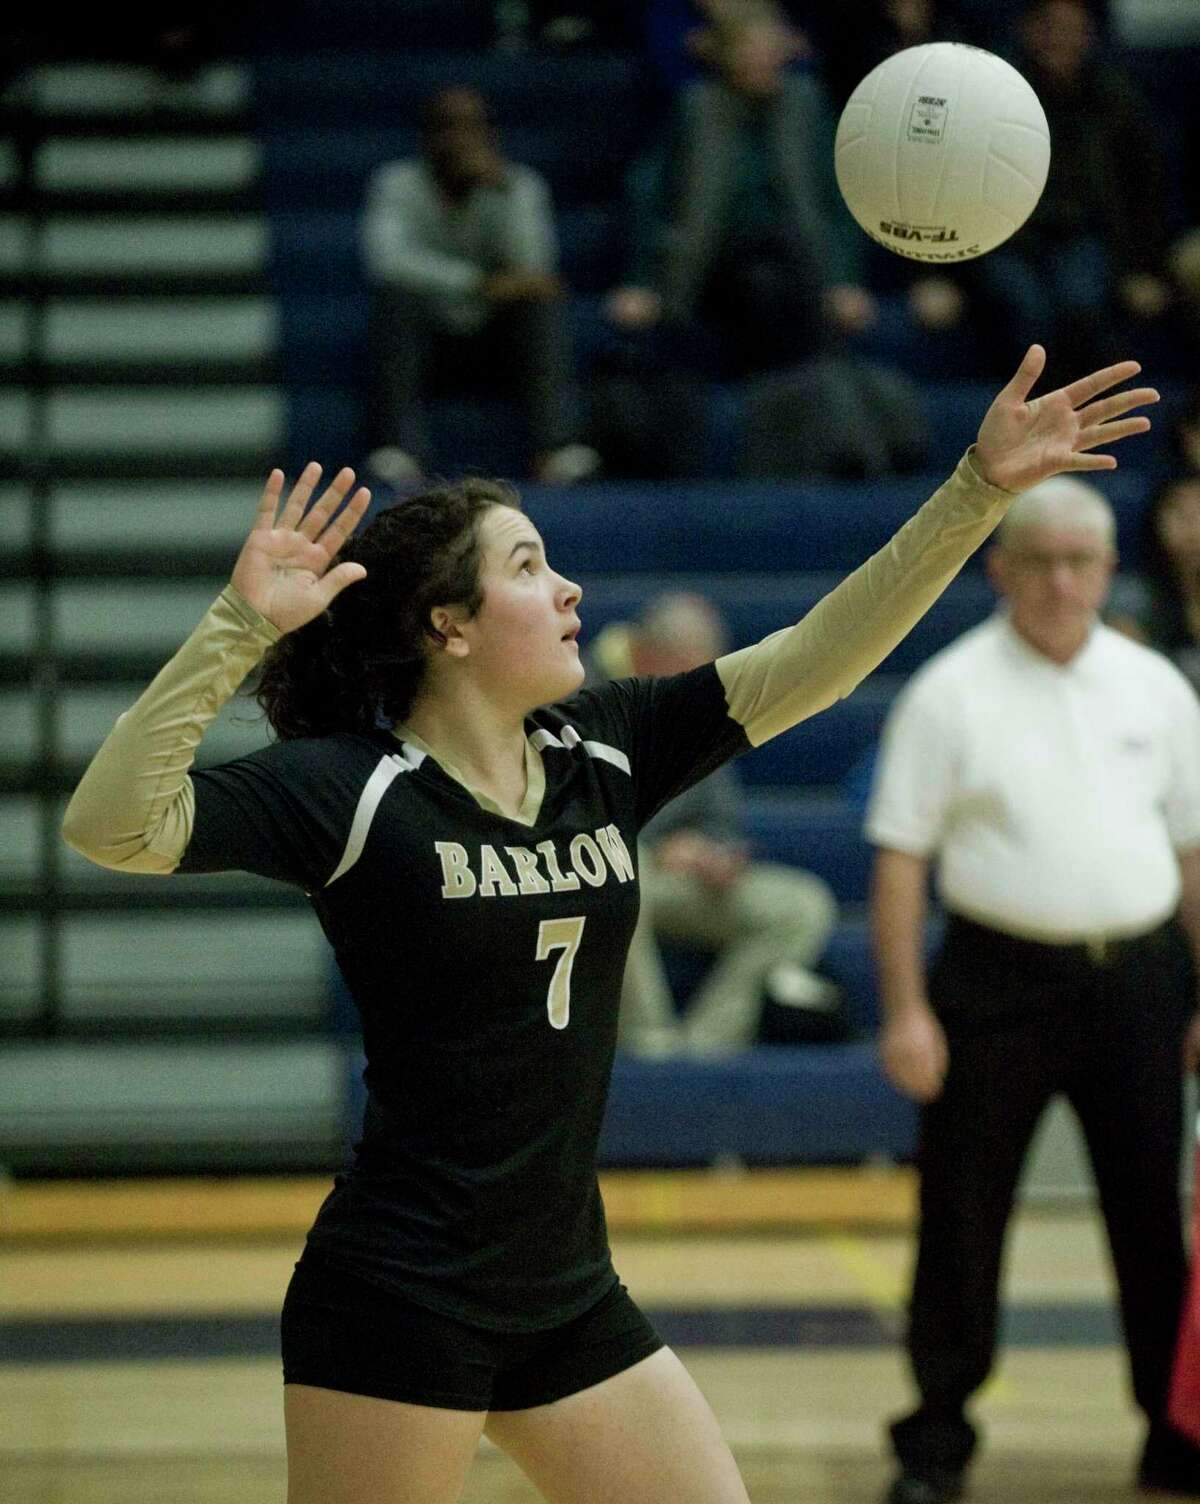 Barlow's Emily Grob serves the ball during the SWC championship game against Newtown in 2018.